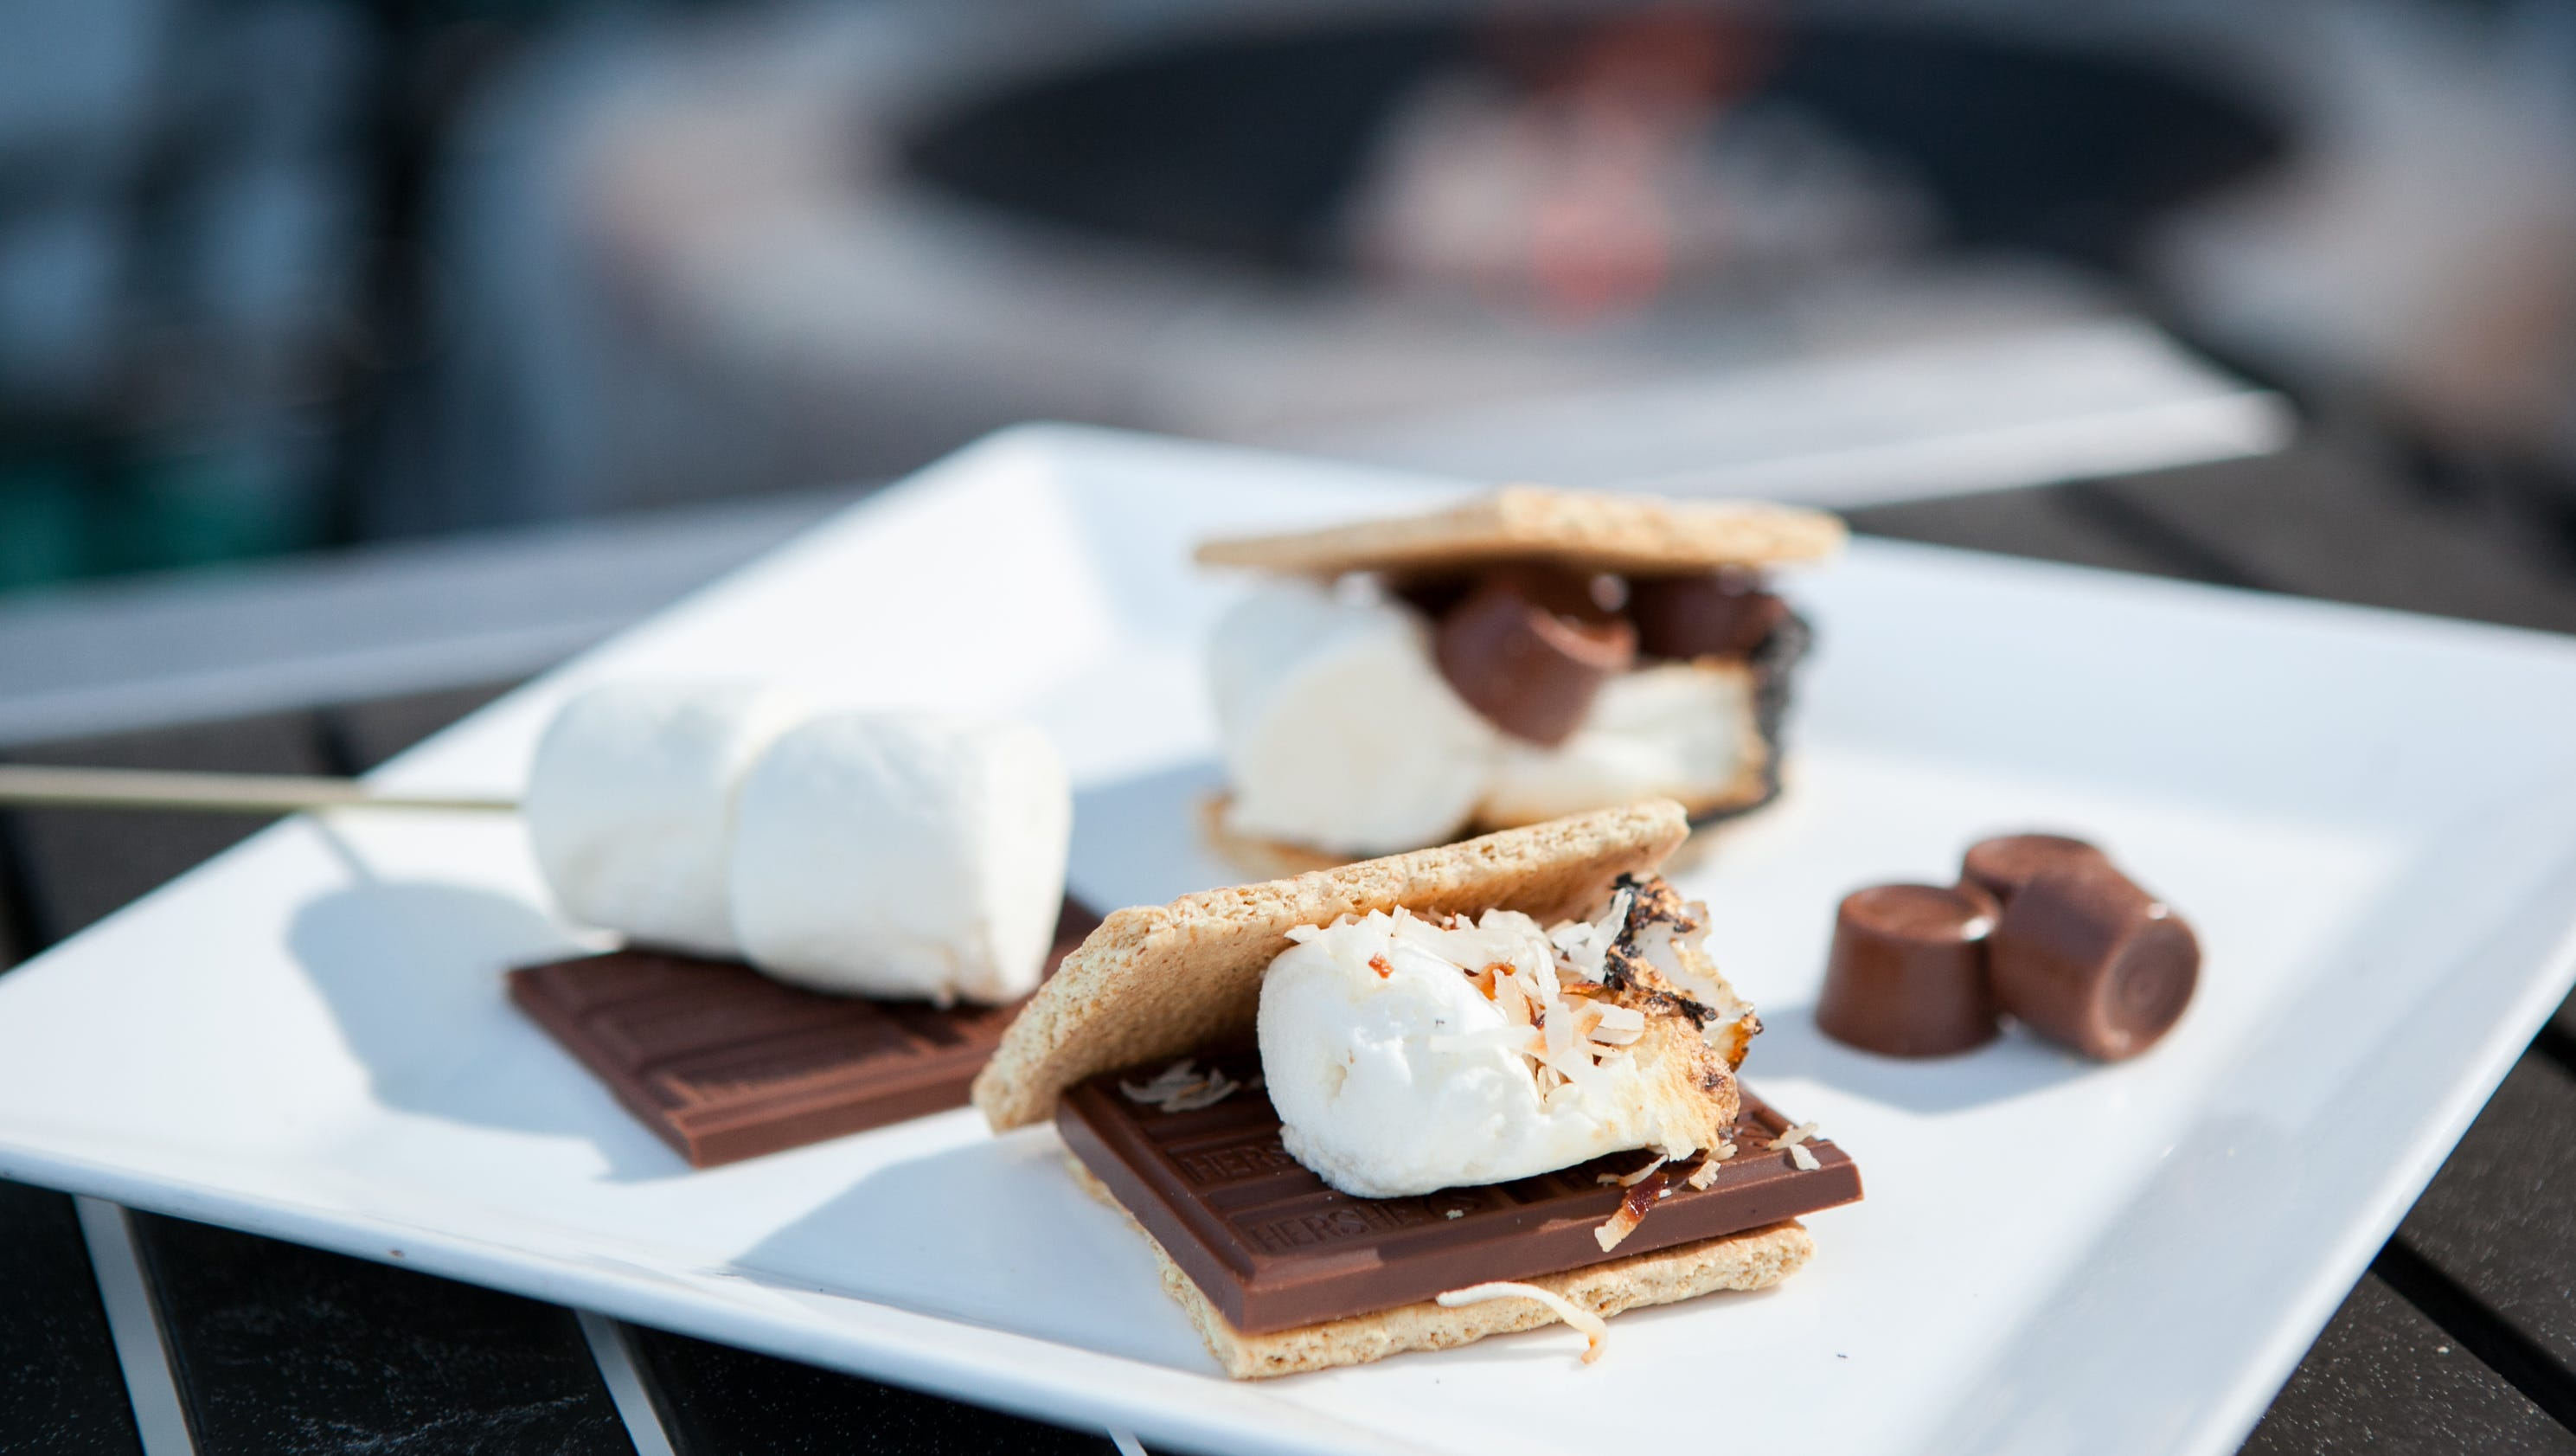 Gimme gimme s'more